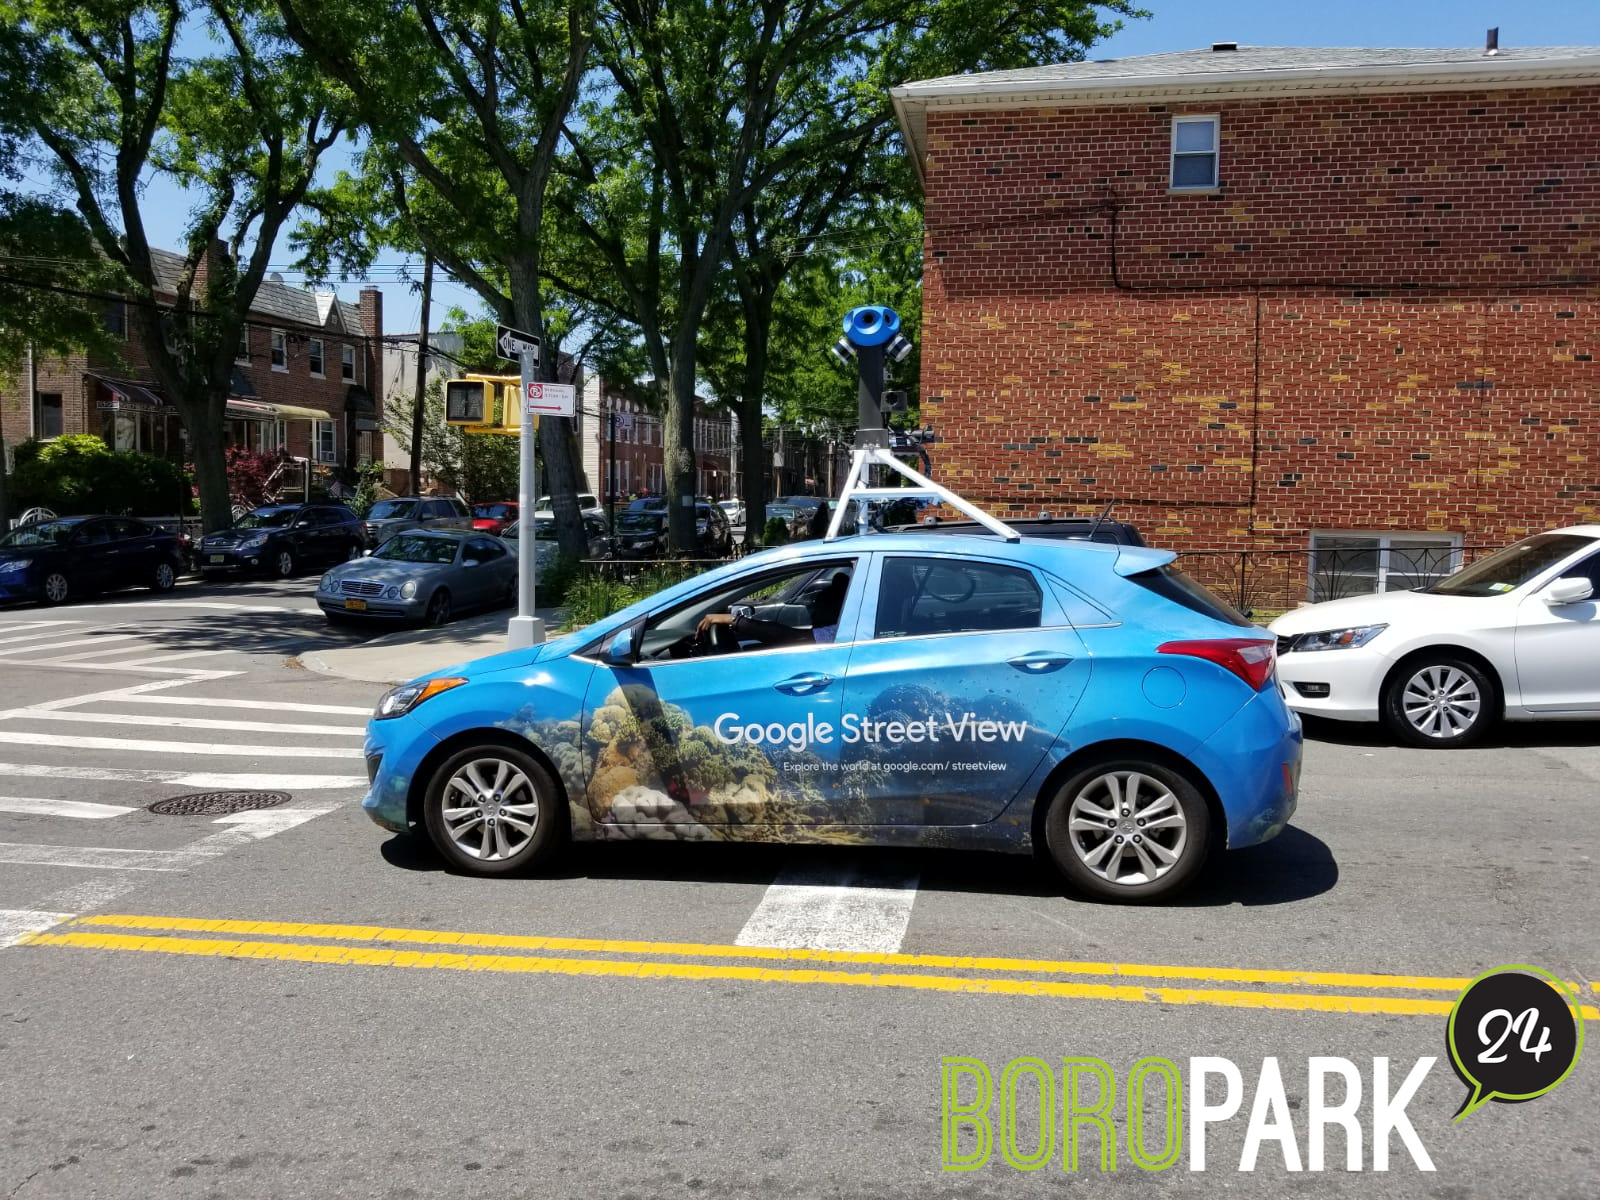 Google Street View Car Spotted in Boro Park! – Boro Park 24 on google earth street view, google search, google earth, google maps vehicle, google street view in africa, flickr street view car, google street view philippines, google art project, google maps camera car, google maps bird's eye view, google street view in latin america, google street view in asia, google maps android icon, google street view privacy concerns, aspen movie map, google street view in europe, google maps cars 2008, google street view washington dc, web mapping, nokia street view car, google street view in oceania, apple street view car, competition of google street view, google air view, location view, google street view wrecks, google street view schedule, google street view in the united states,